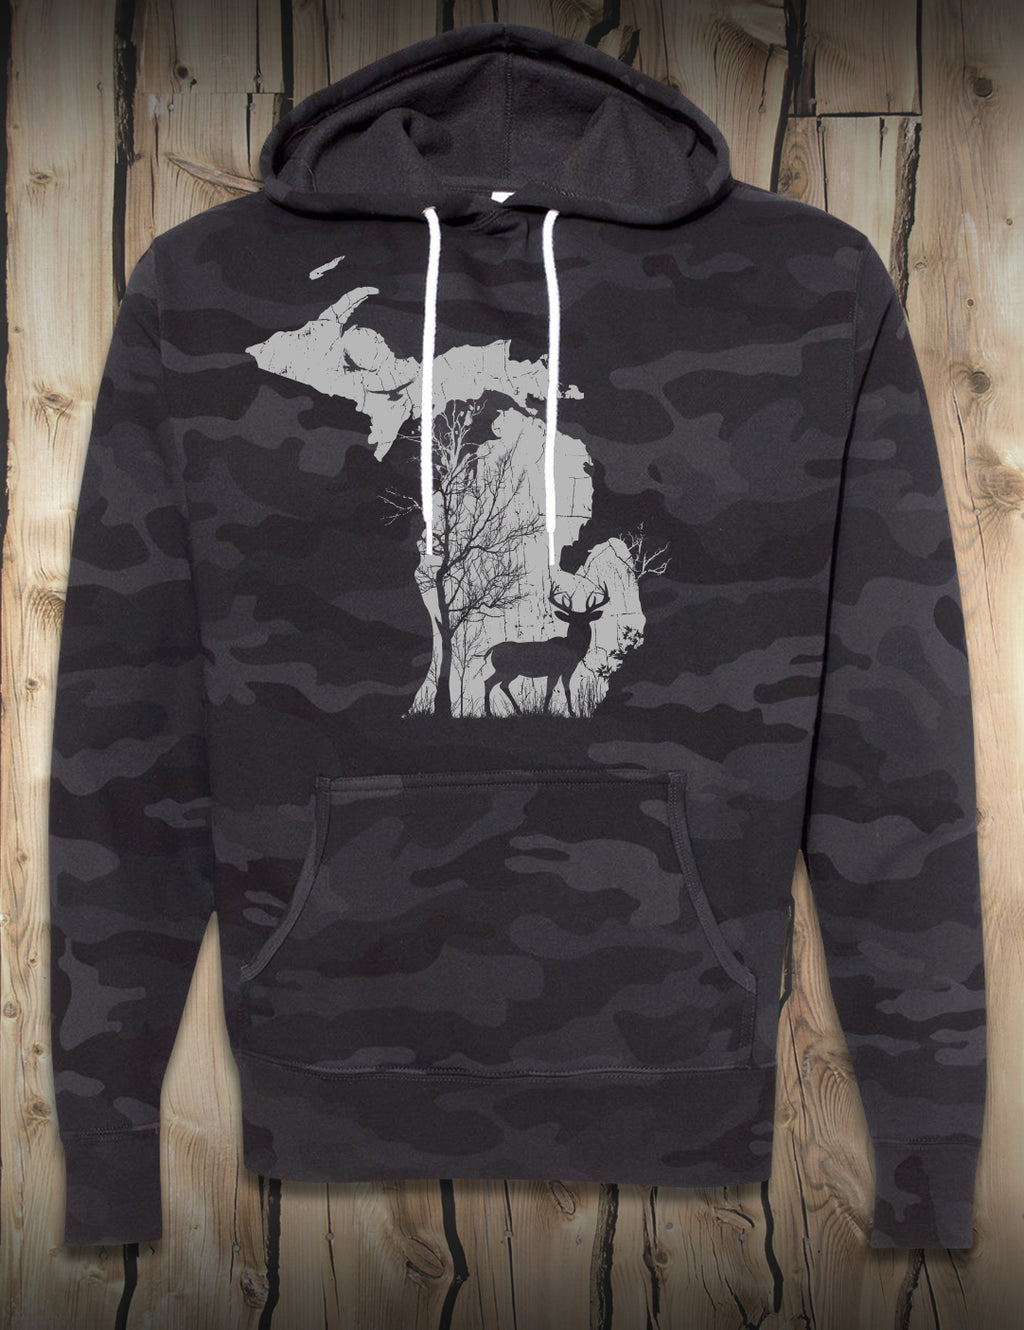 Deer in the Woods - Hoodie - Black Camo